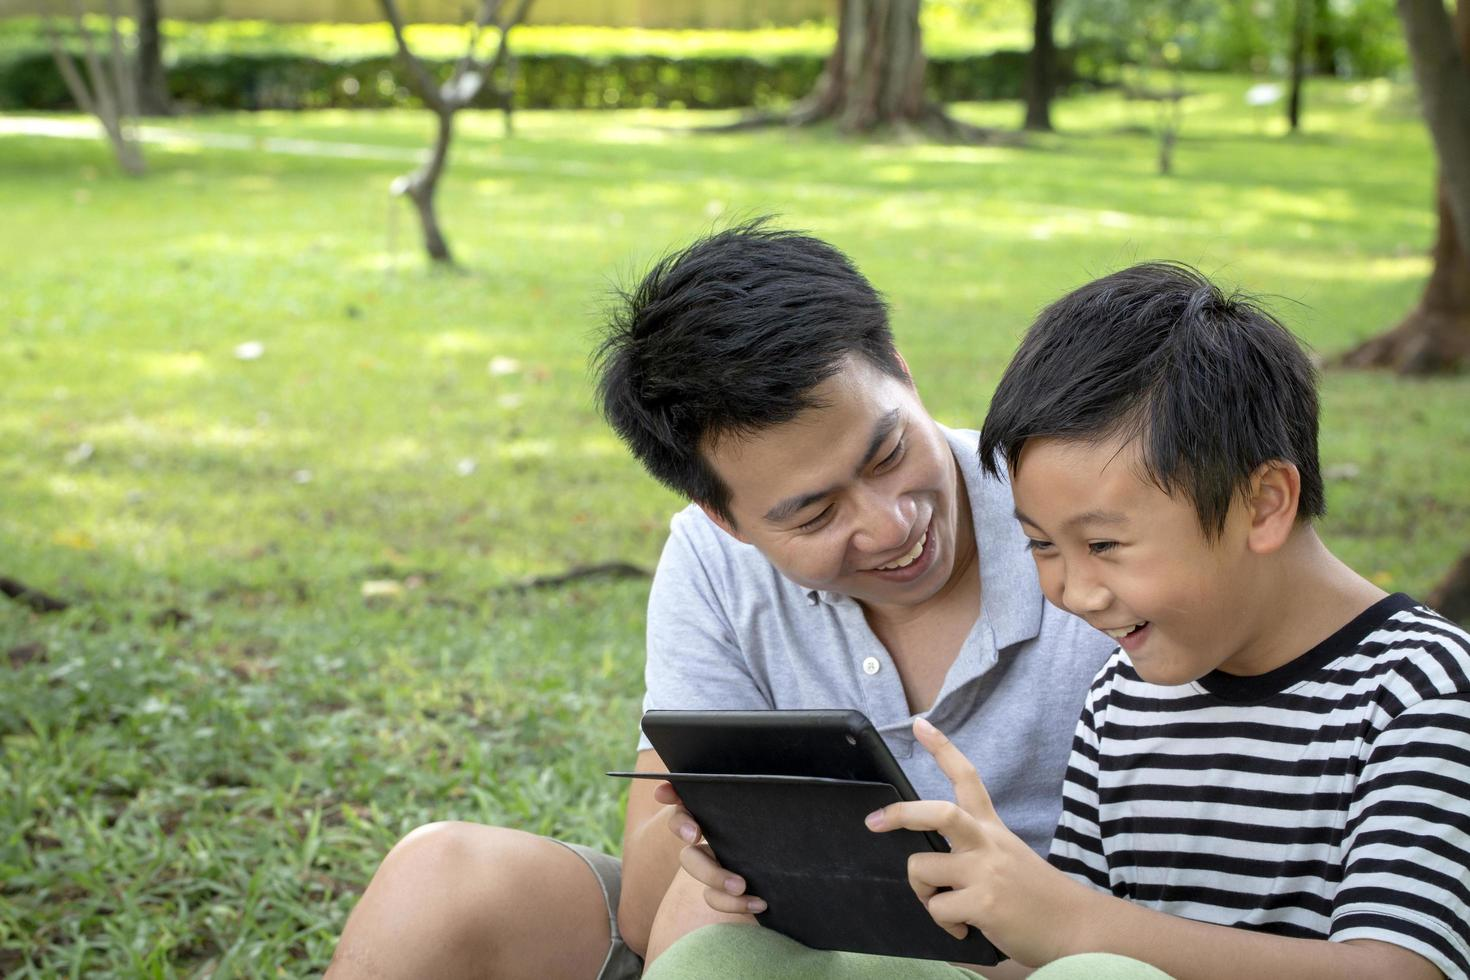 Father and son using a tablet outside photo